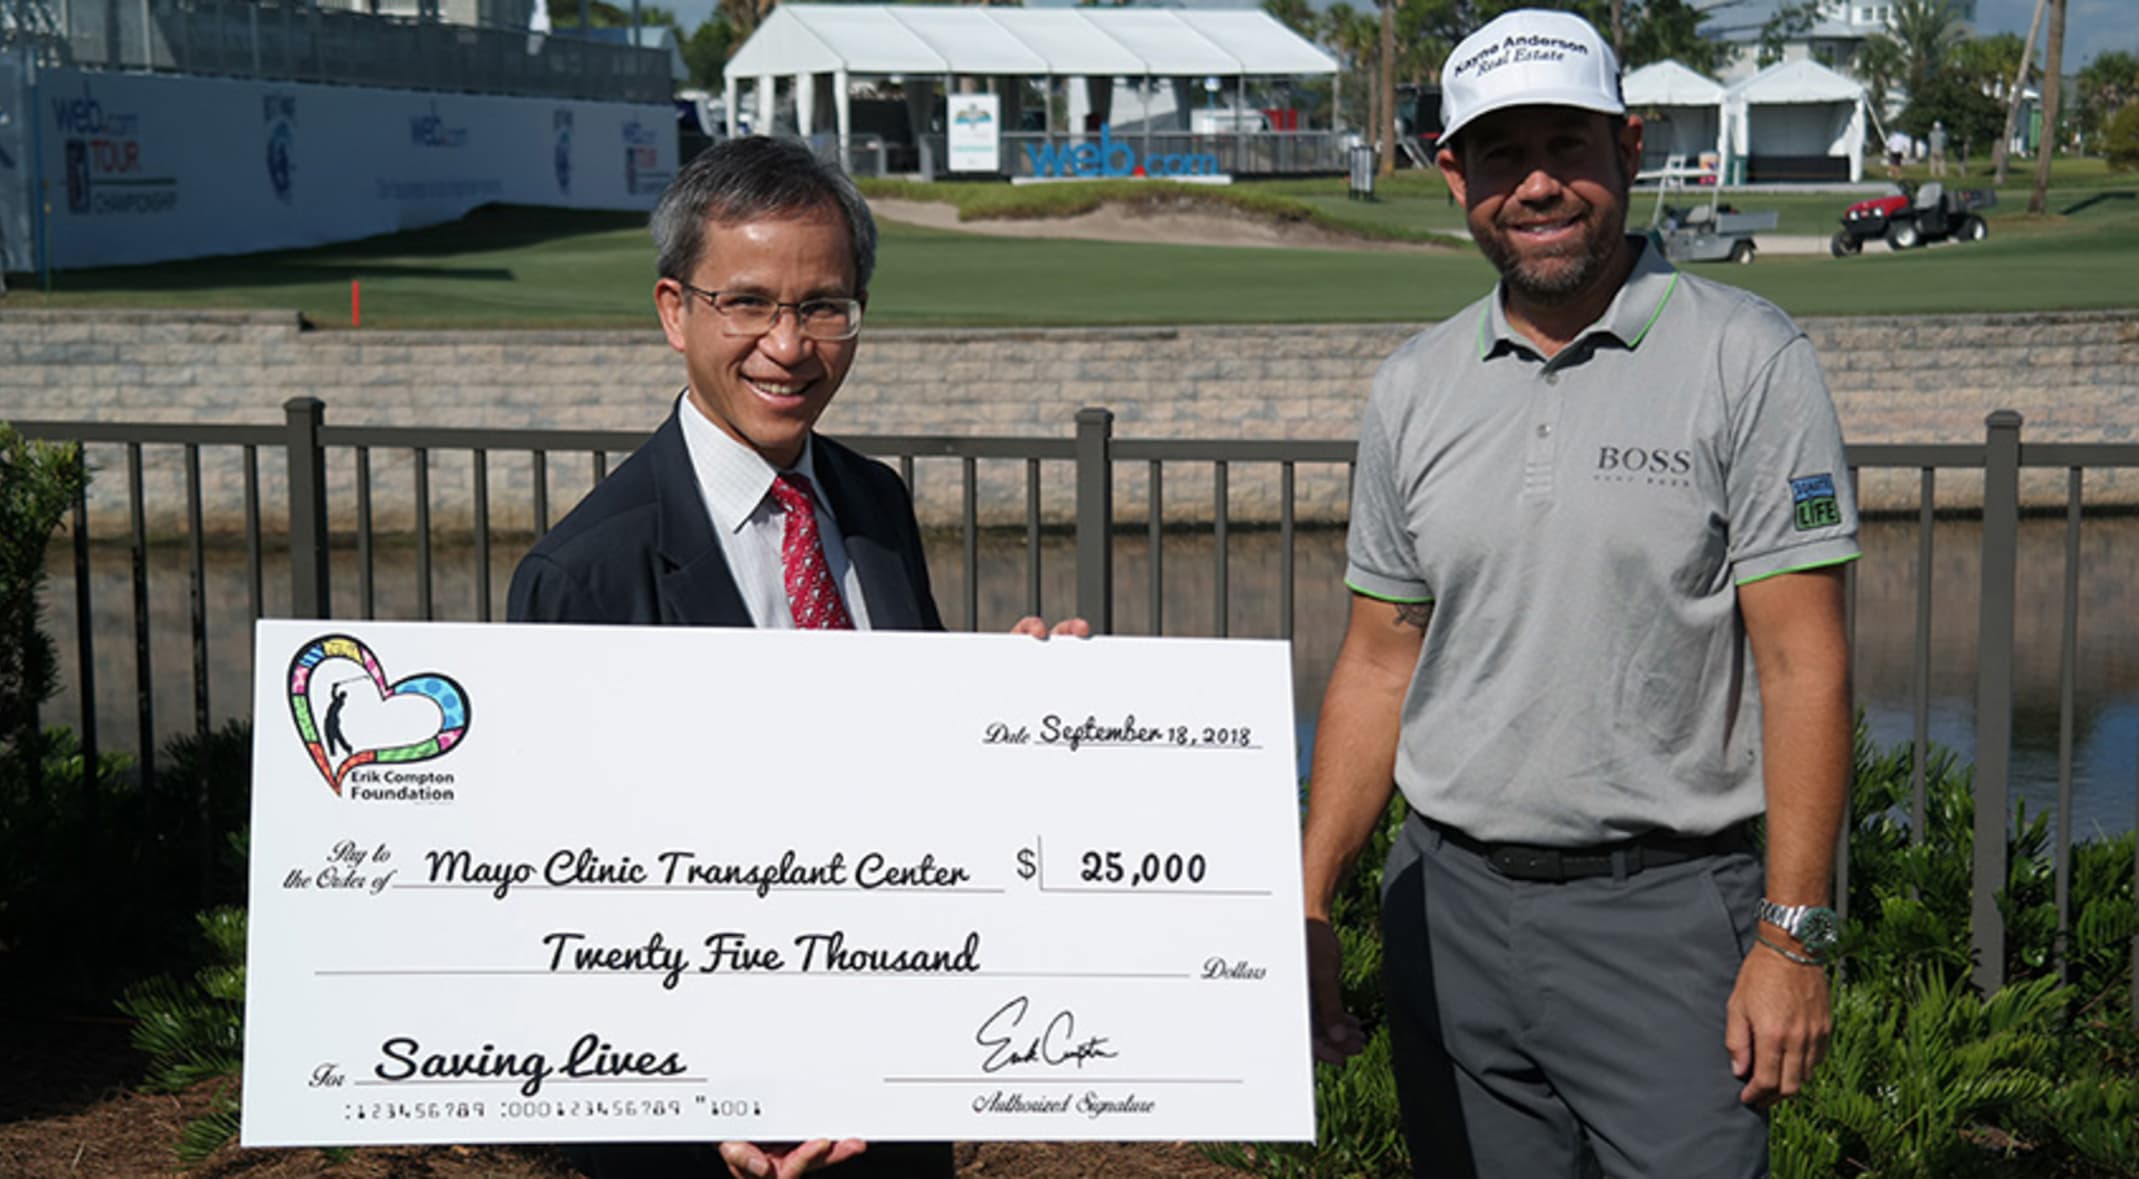 Erik Compton Foundation donates $25,000 to Mayo Clinic Transplant Center